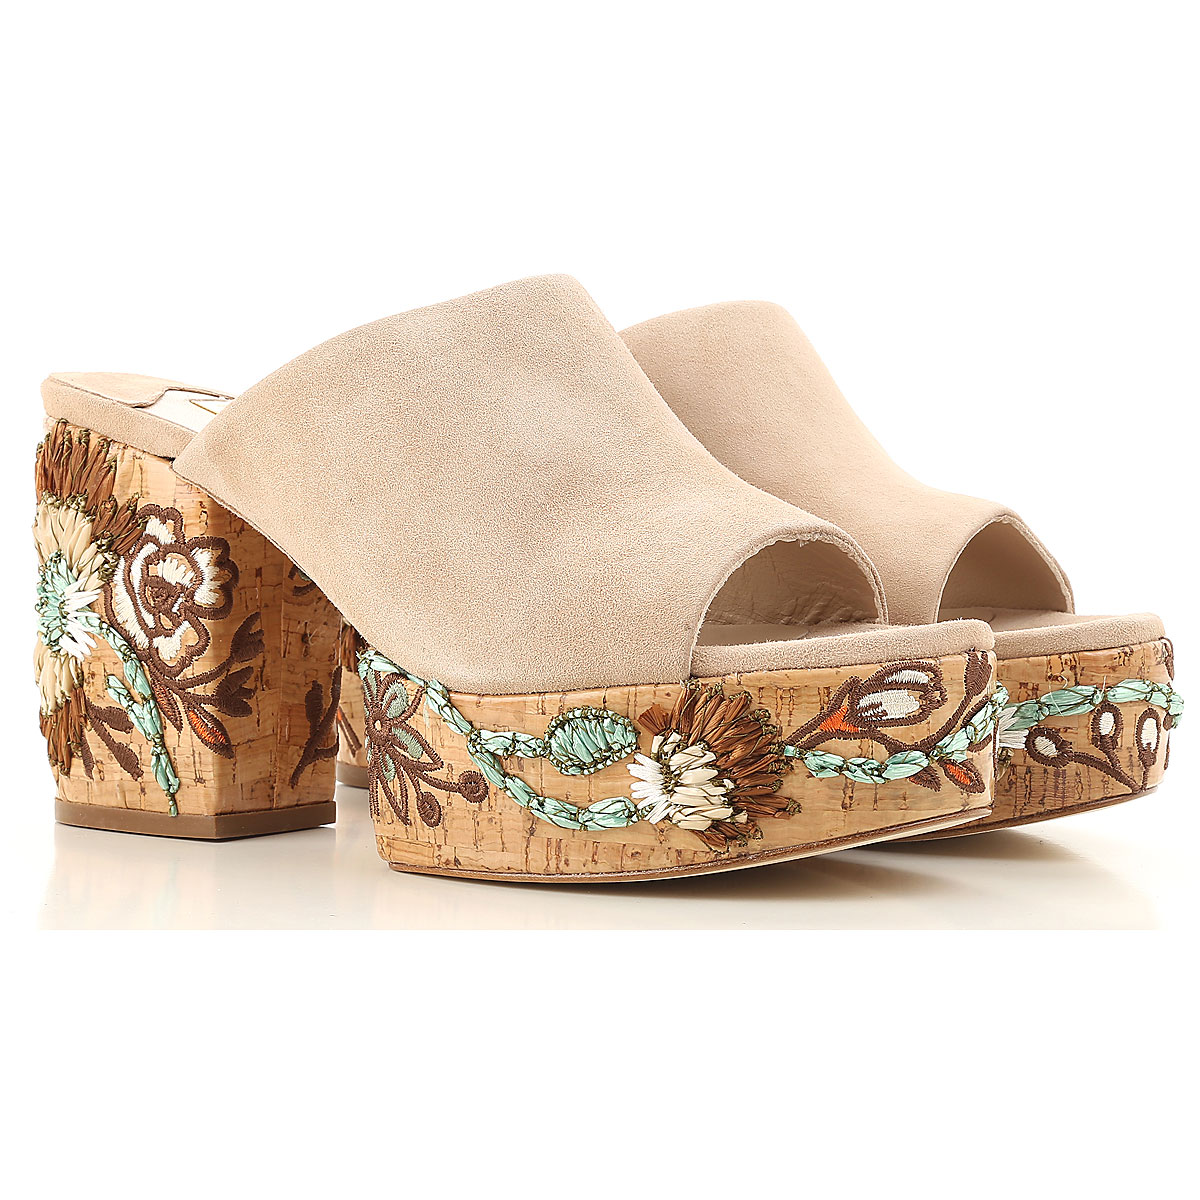 Paloma Barcelo Wedges for Women, Nude, suede, 2017, 7 8 USA-456254